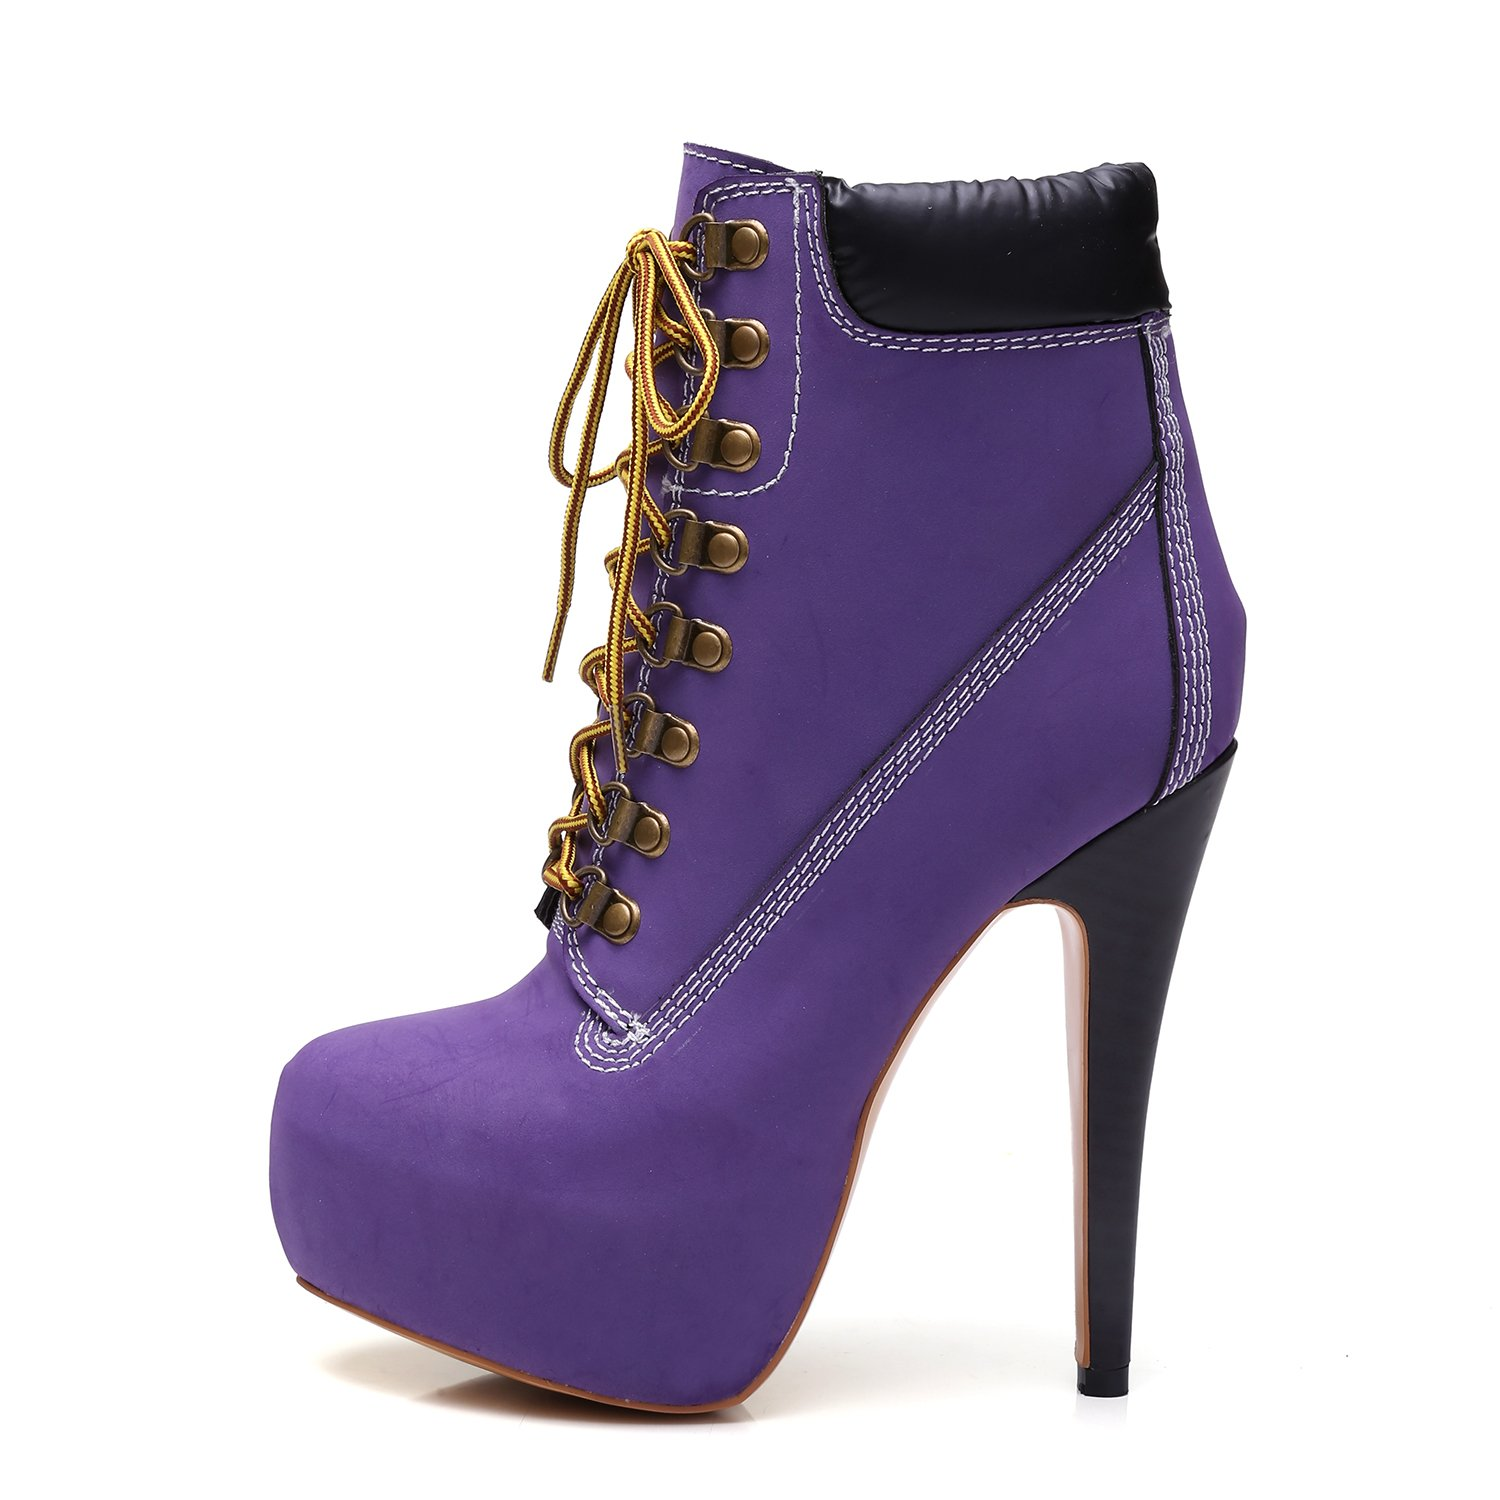 onlymaker Women's Rivet Studded Platform High Heel Pointed Toe Lace up Ankle Boots (9.5 B(M) US, Purple)